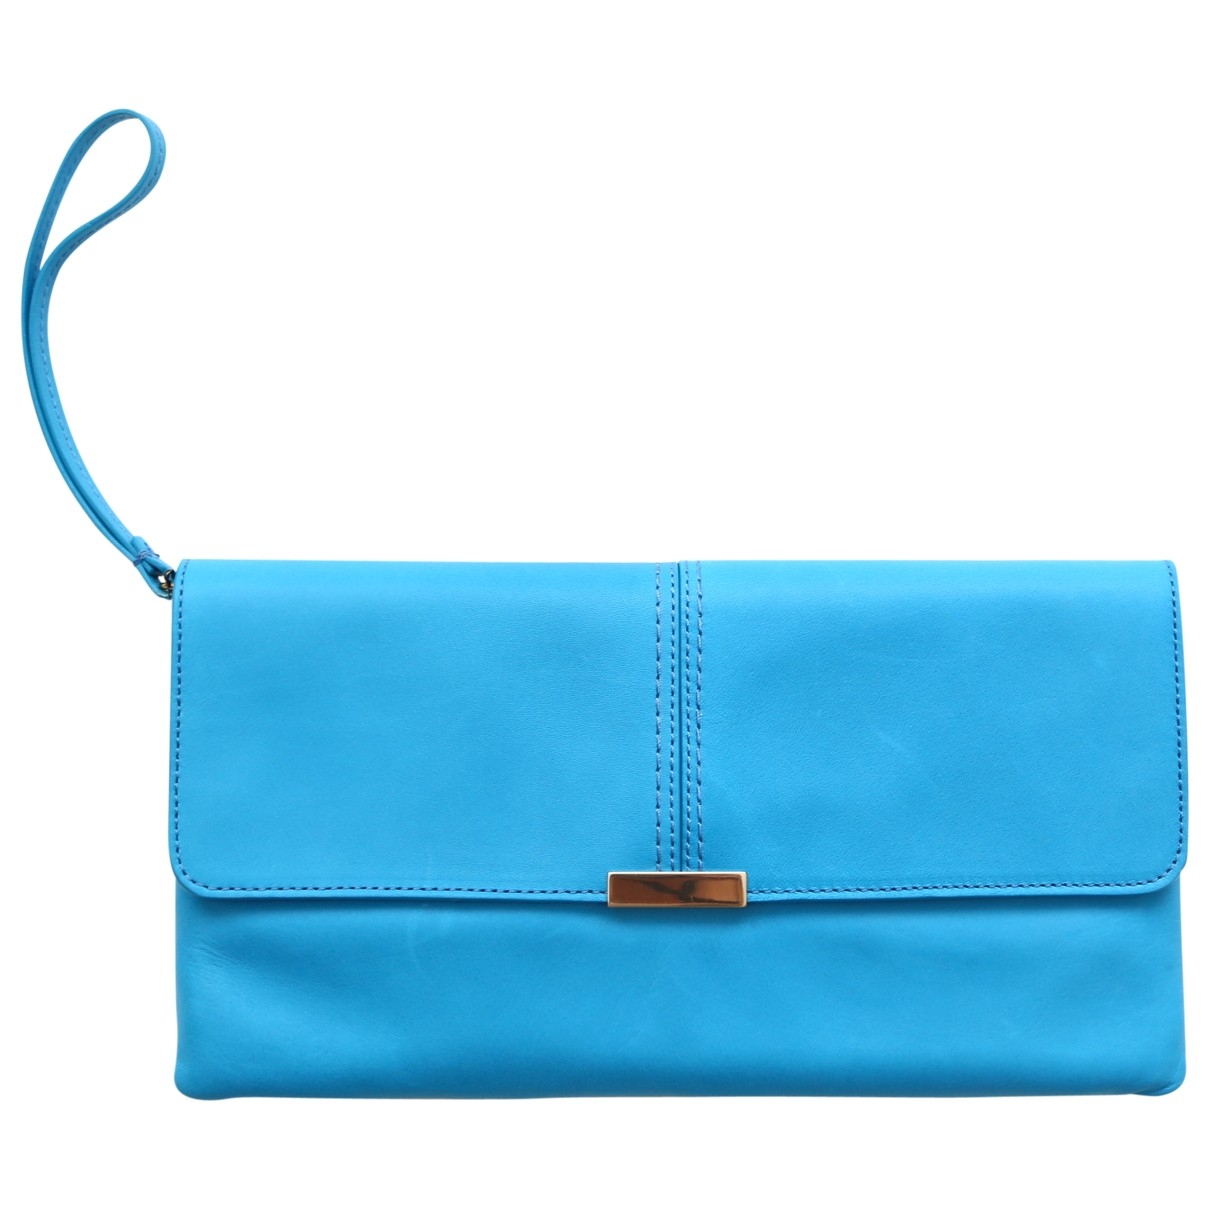 & Stories \N Turquoise Leather Clutch bag for Women \N